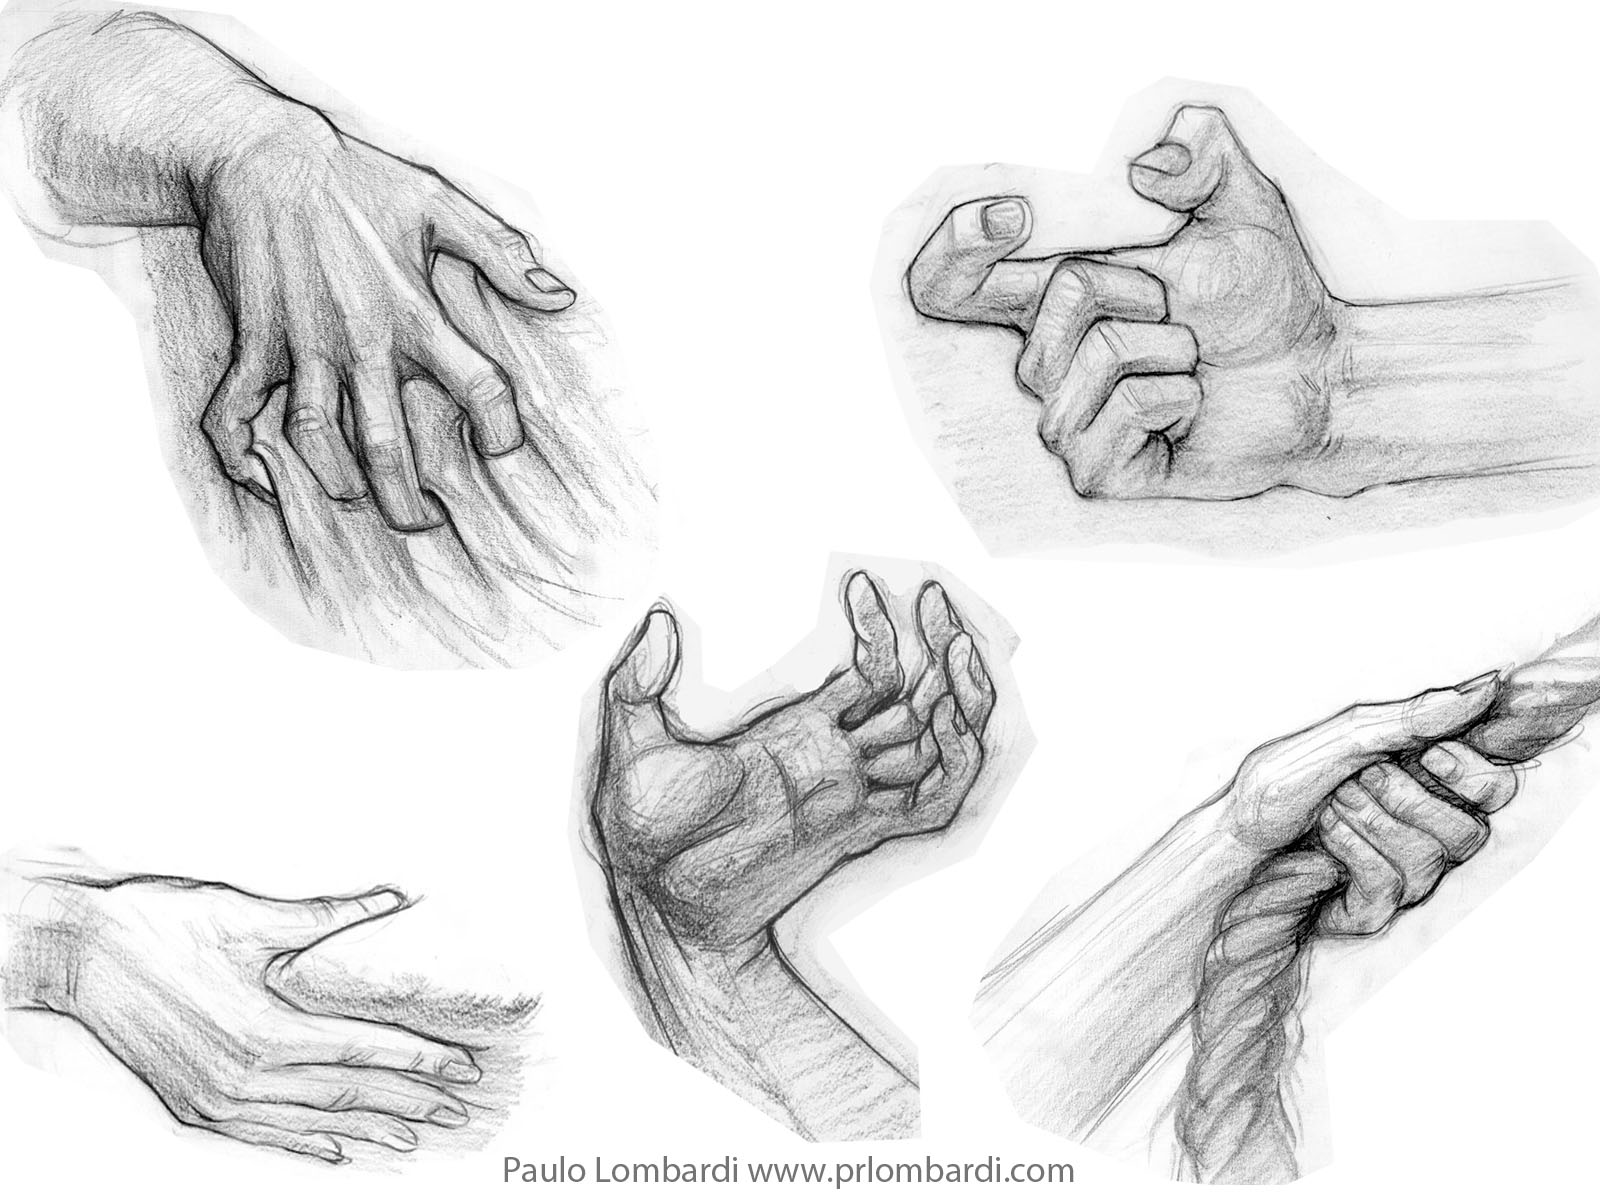 Hand Figure Drawing - ClipartXtras